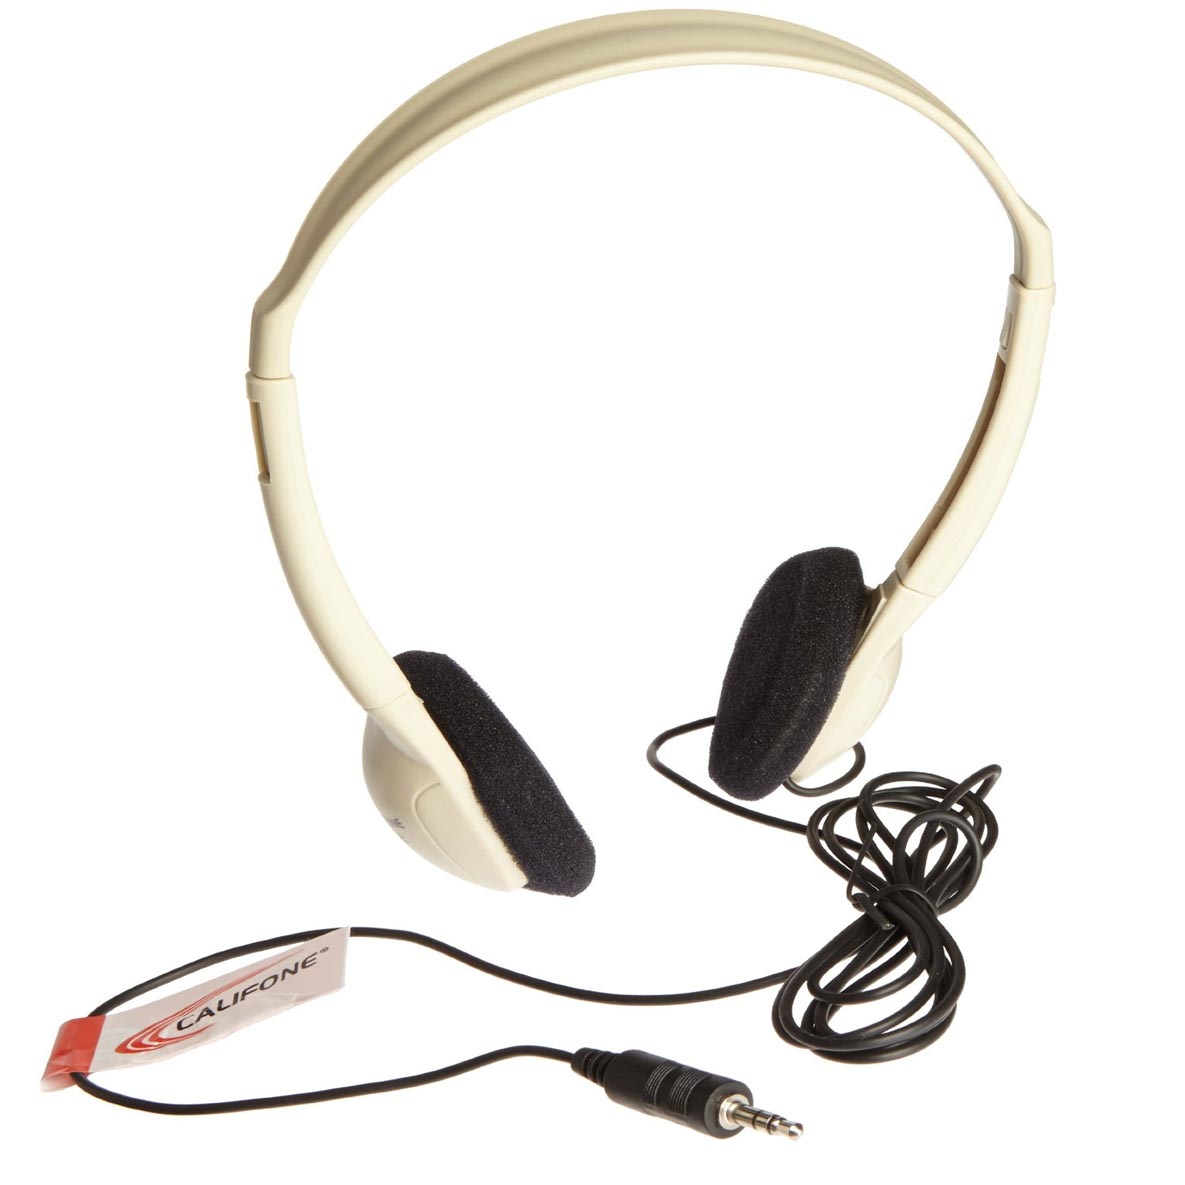 Califone Individual Storage Headphone